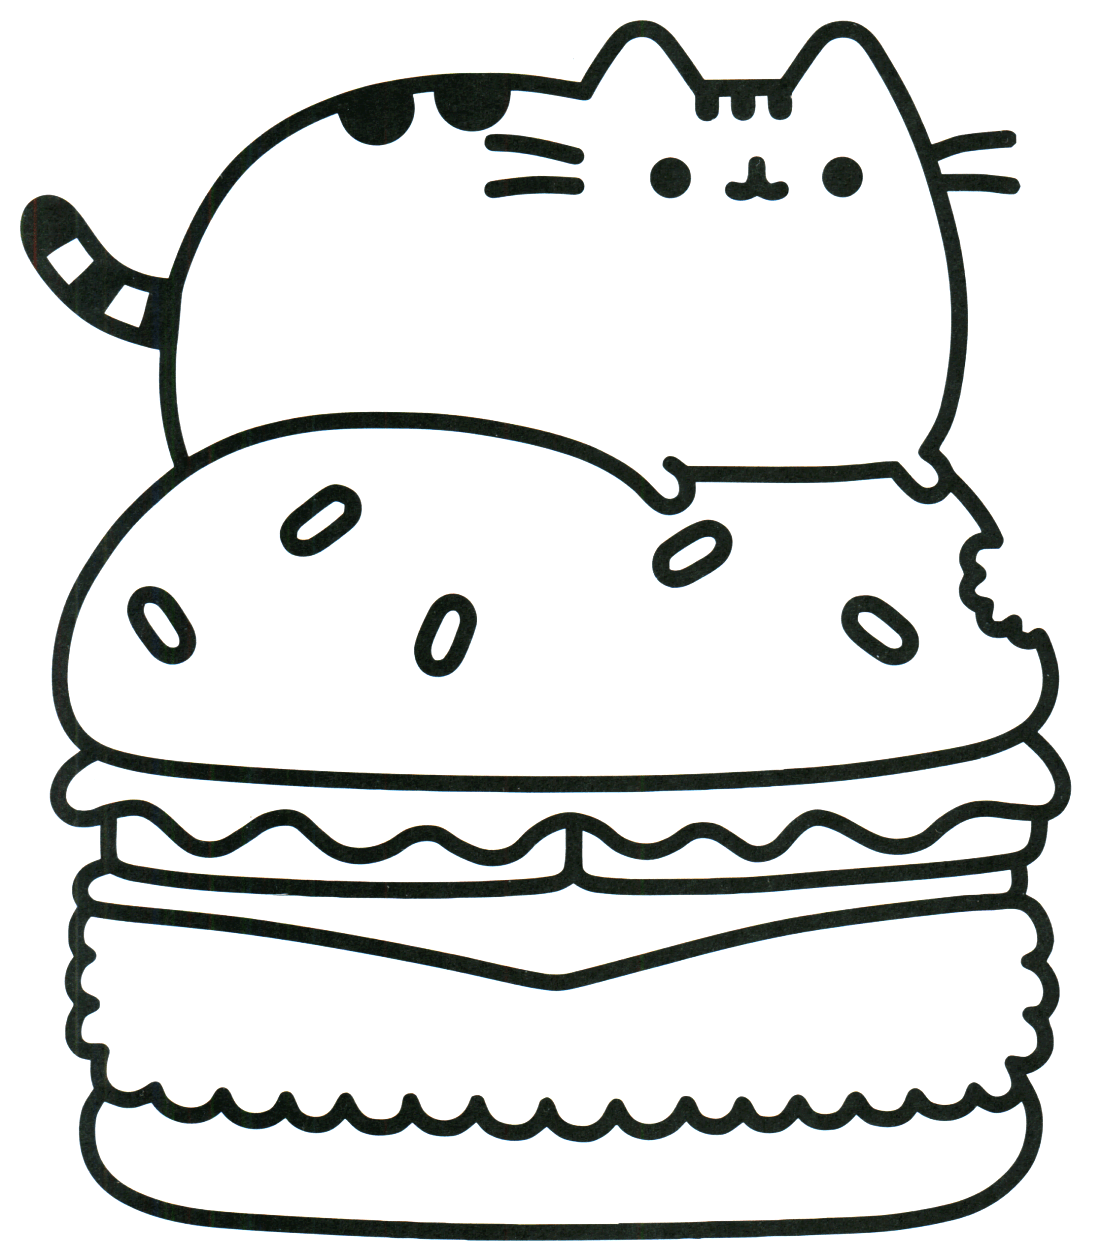 Pusheen Cat Coloring Pages | Cat coloring page, Pusheen ...